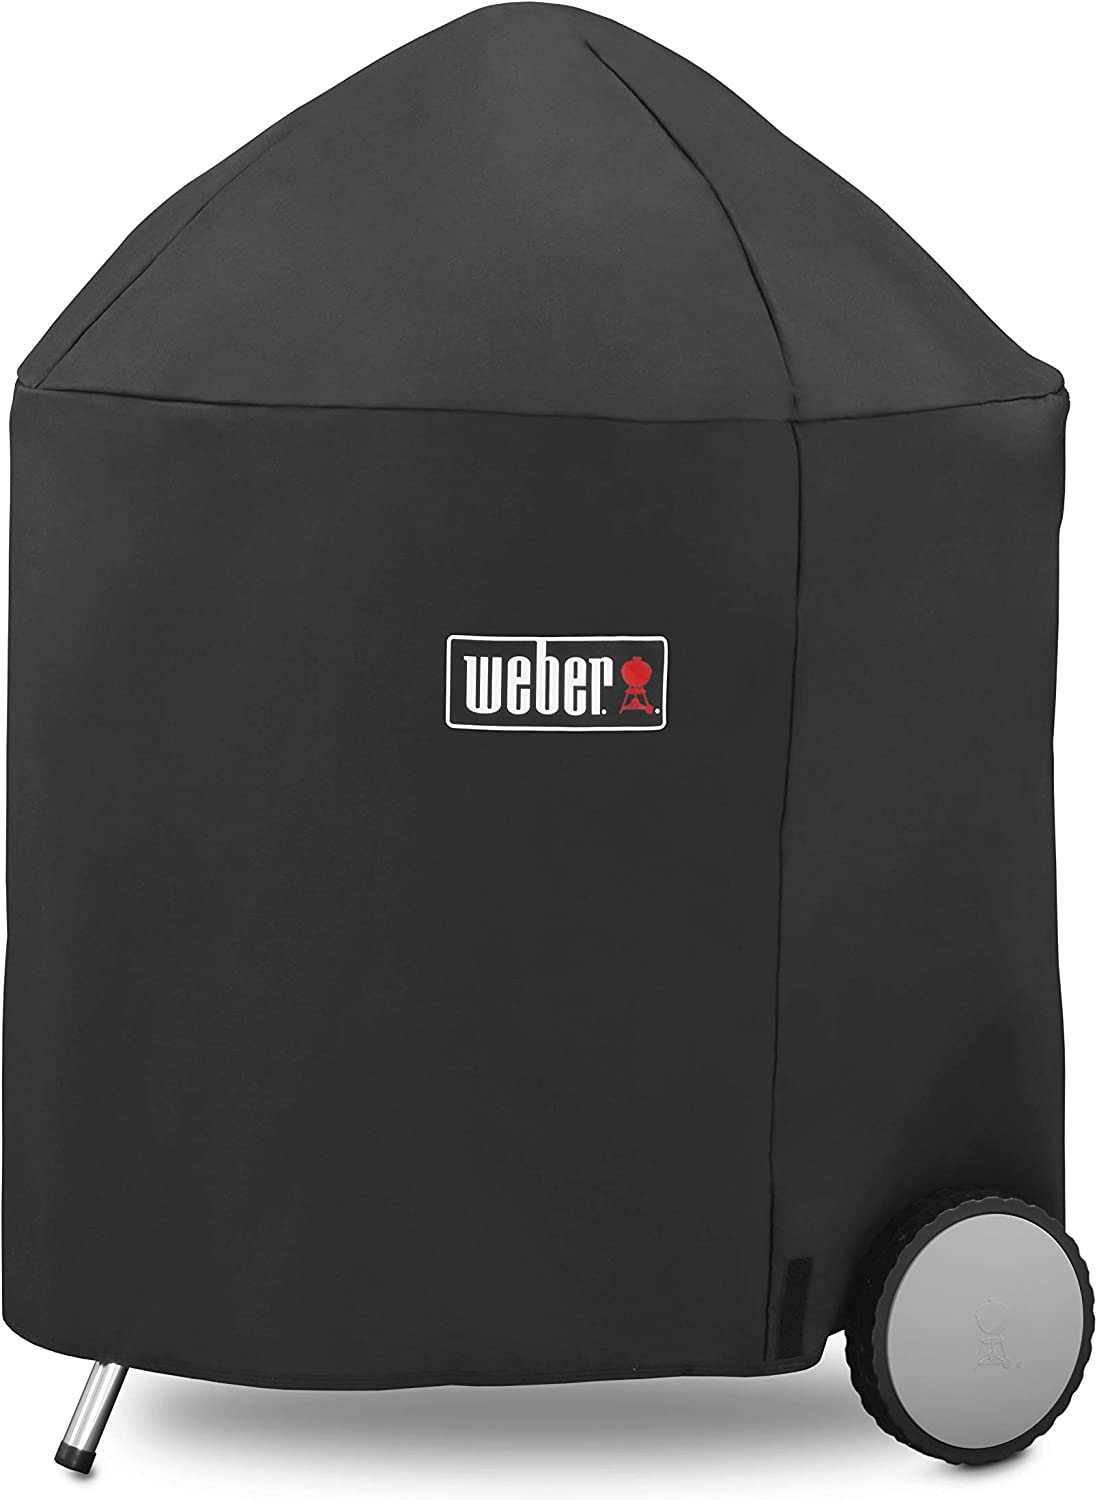 Weber 7153 Cover with Storage Bag 26 Inch Charcoal Grills, beige